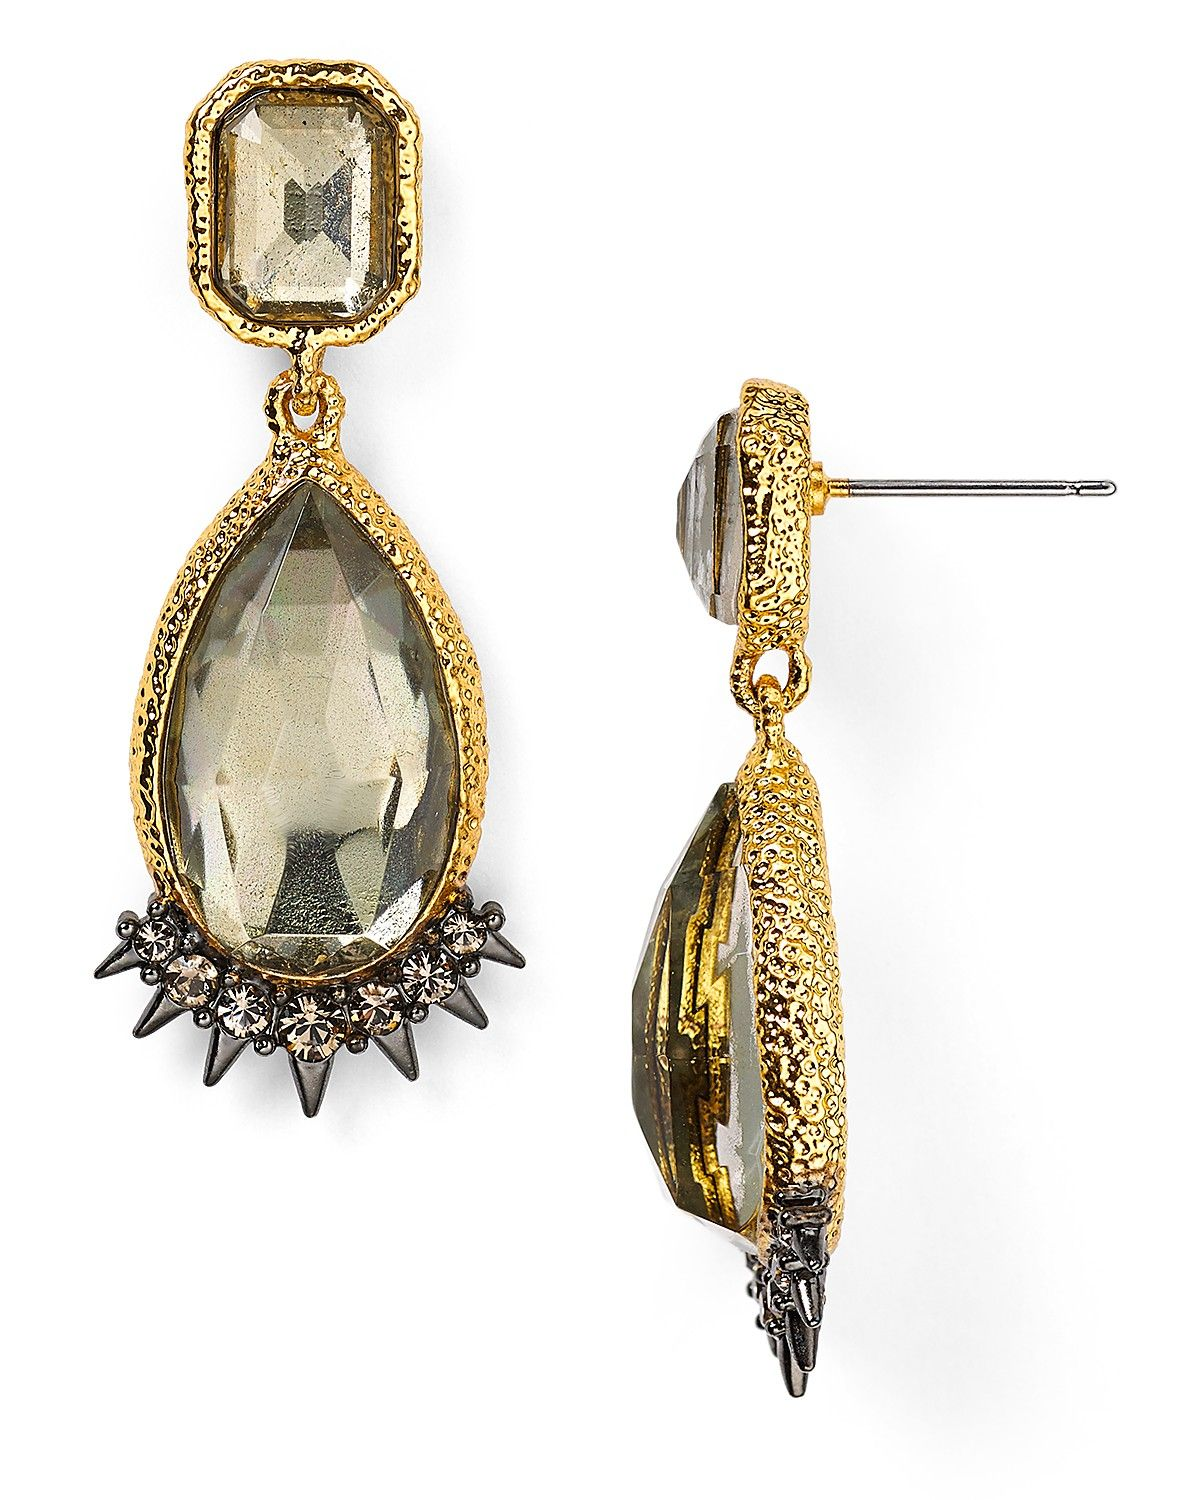 Alexis Bittar Crystal Studded Spur Trimmed Pyrite Doublet Earrings | Bloomingdale's